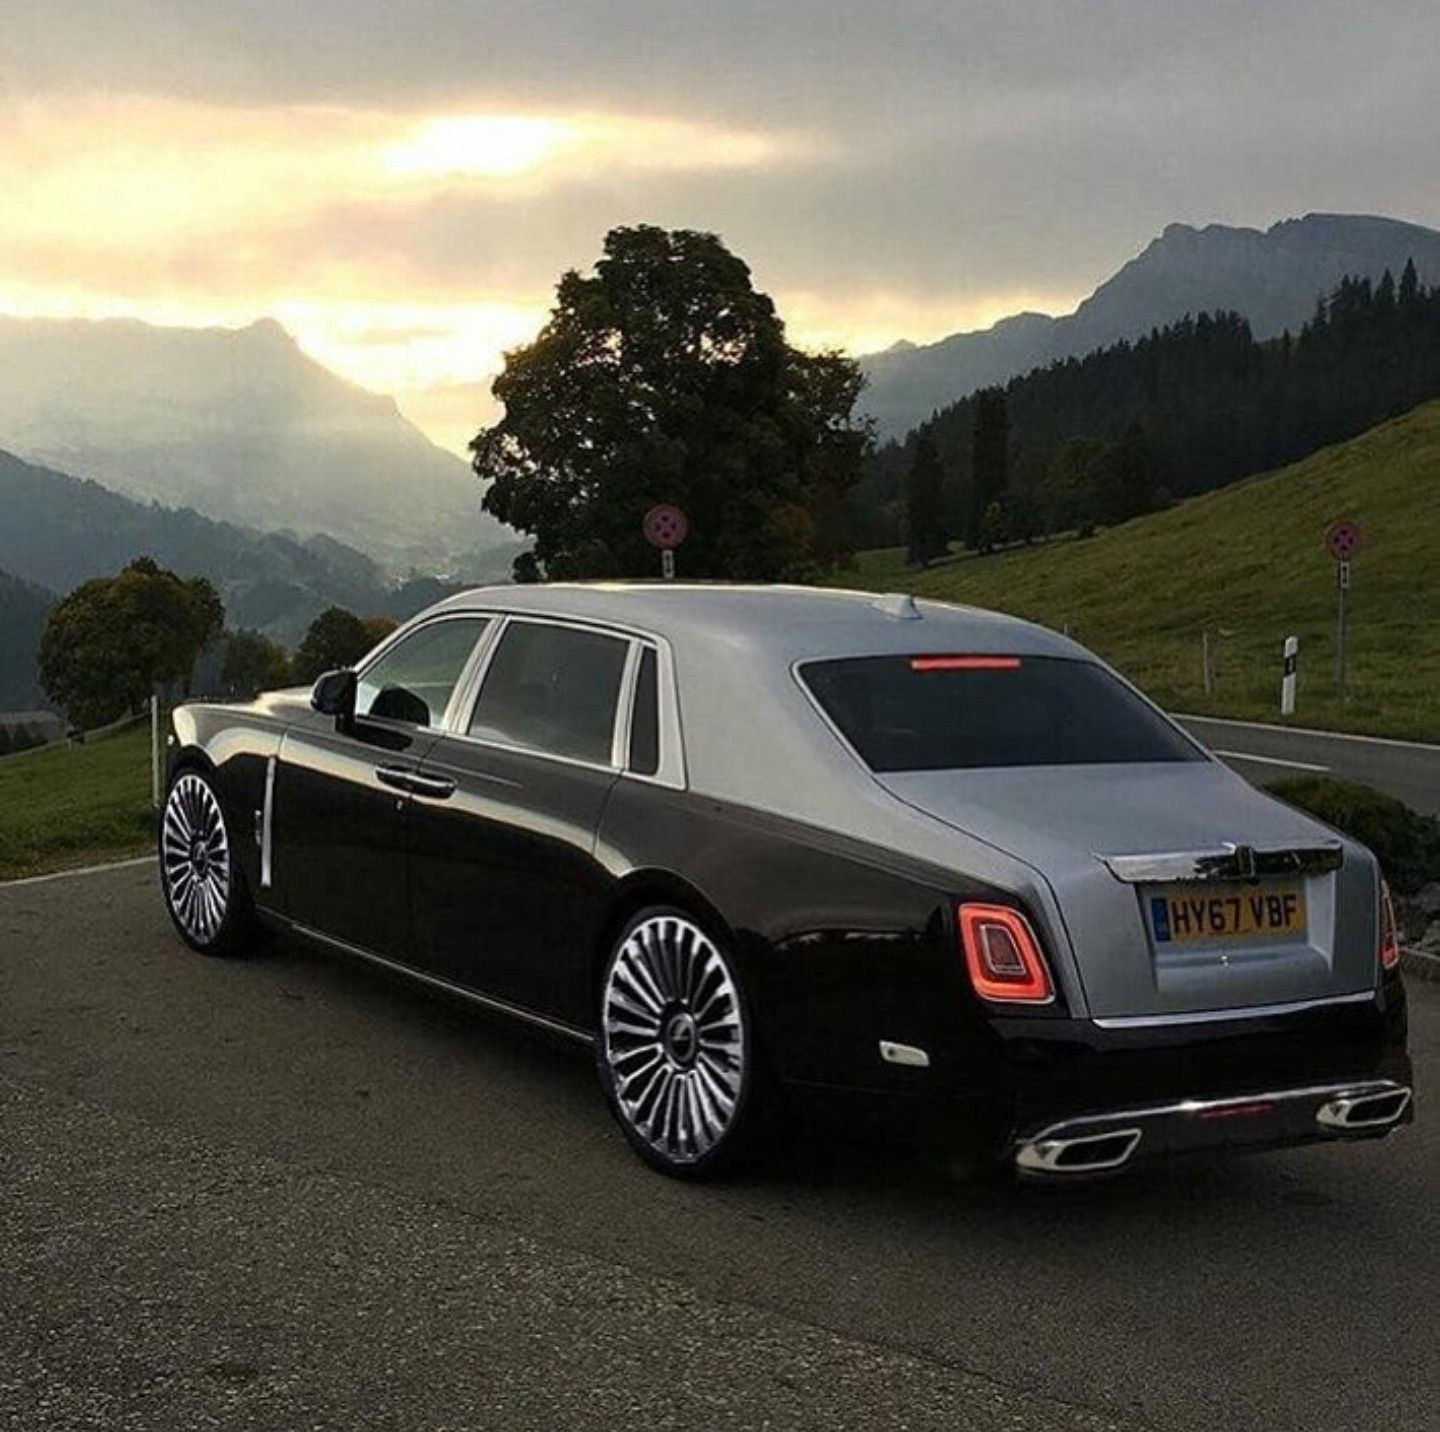 Supercar Duo Luxurycorp Rollsroyce: Rolls Royce, Rolls Royce Cars, Classic Cars